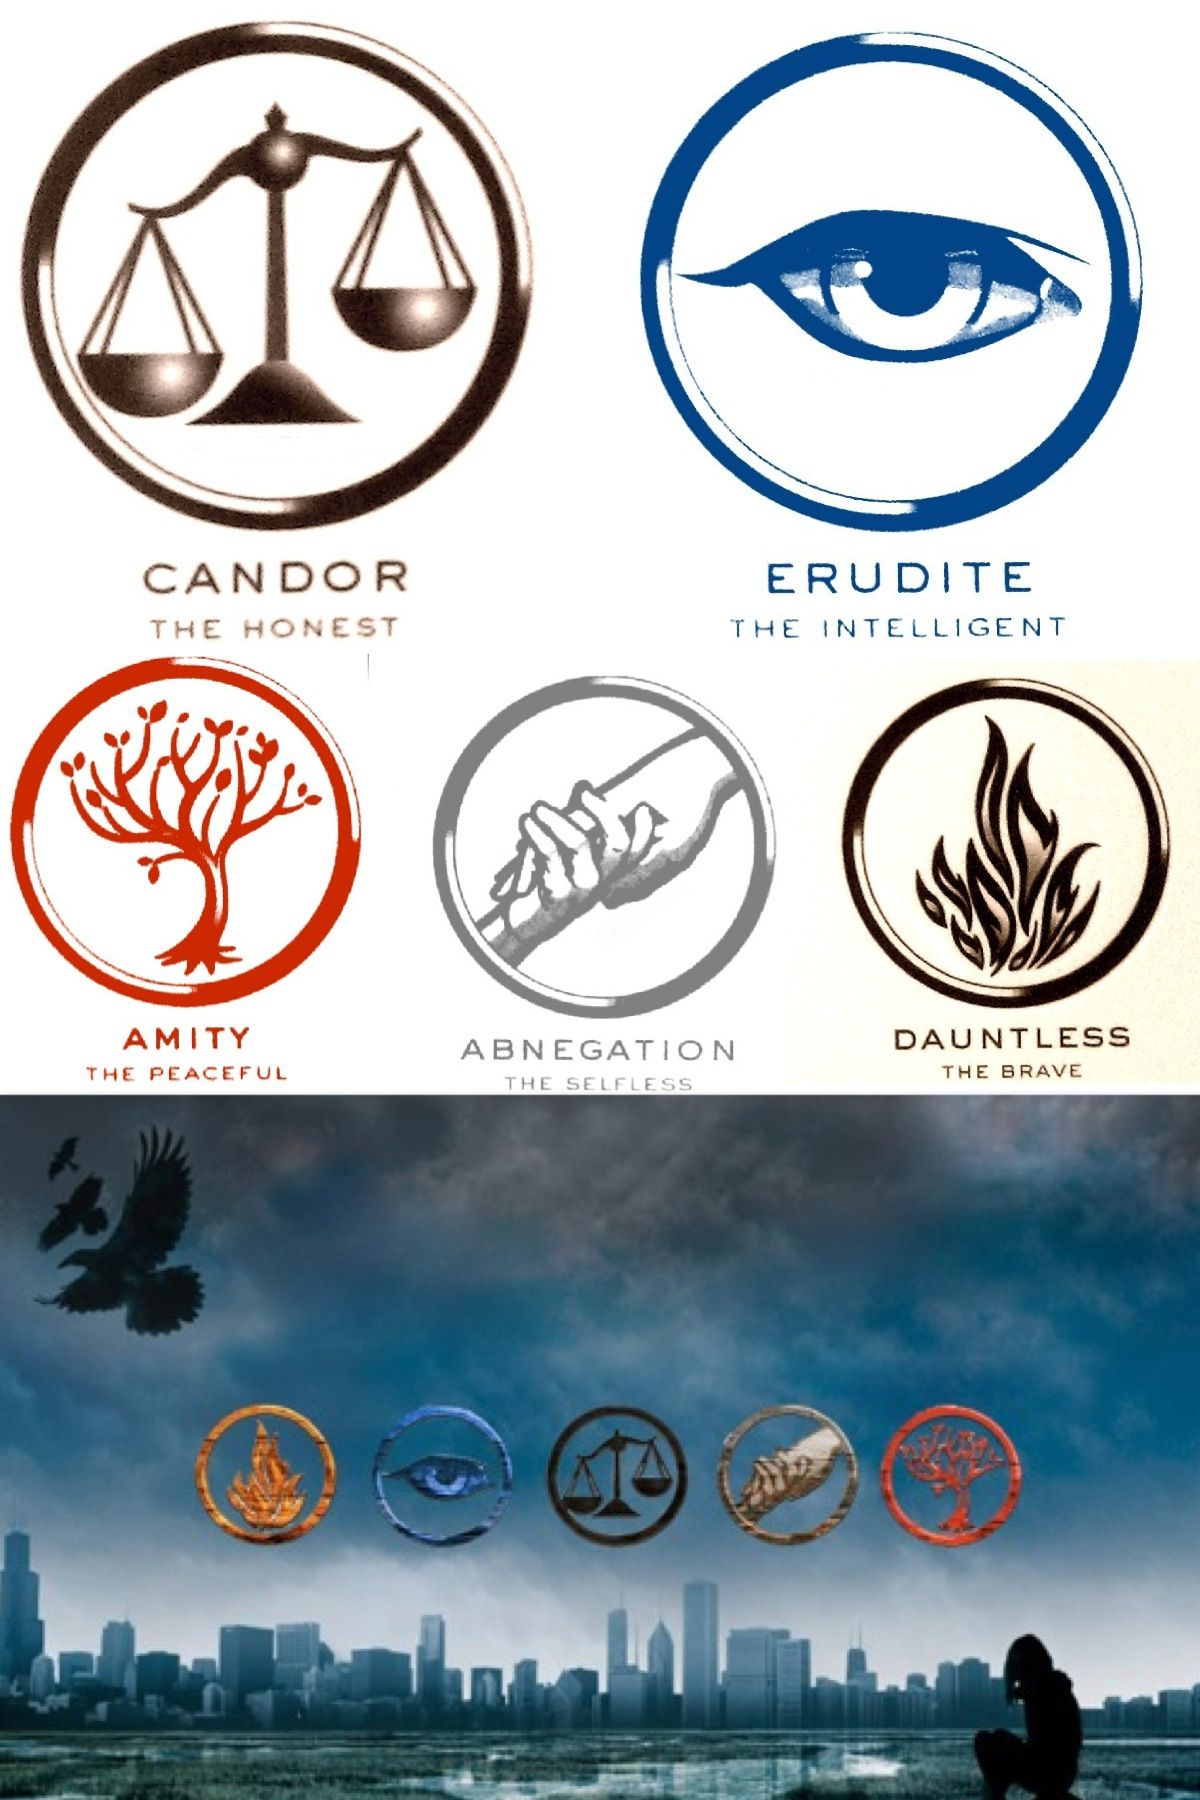 divergent symbols and meanings - HD1200×1800